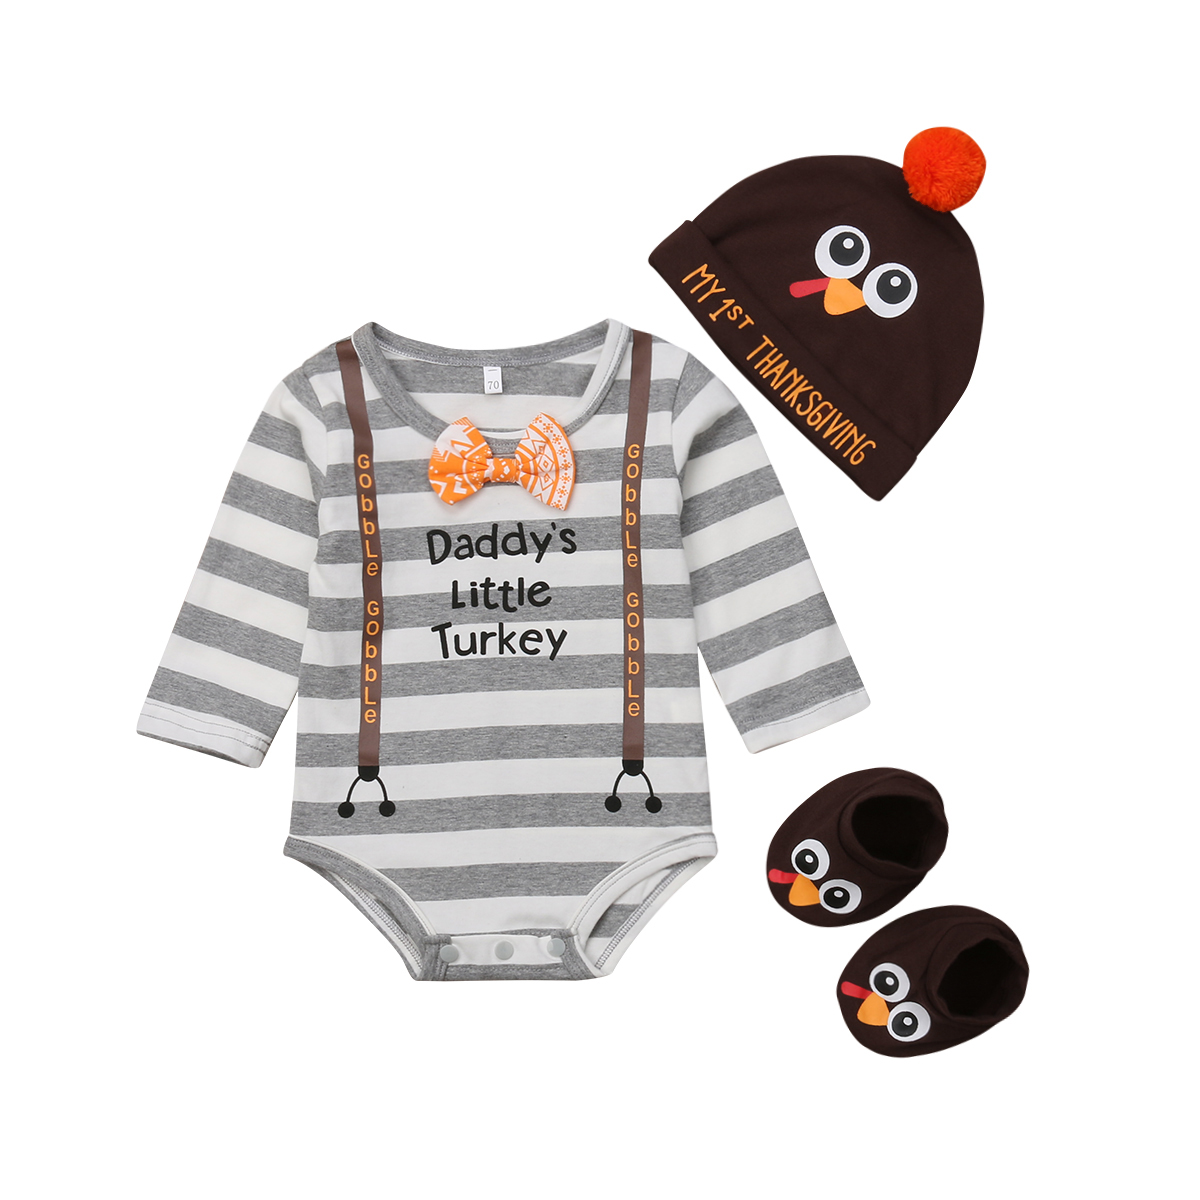 Turkey Clothes Set 3pcs Newborn Baby Boy Bodysuit Long Sleeve Boe Tops Hat 3Pcs Outfit Cotton Party Cute Clothes Set Baby 0-18M newborn baby girl clothes set 3pcs kid party my first christmas cotton bodysuit sequin bowknot tulle tutu skirt headband outfit page 1